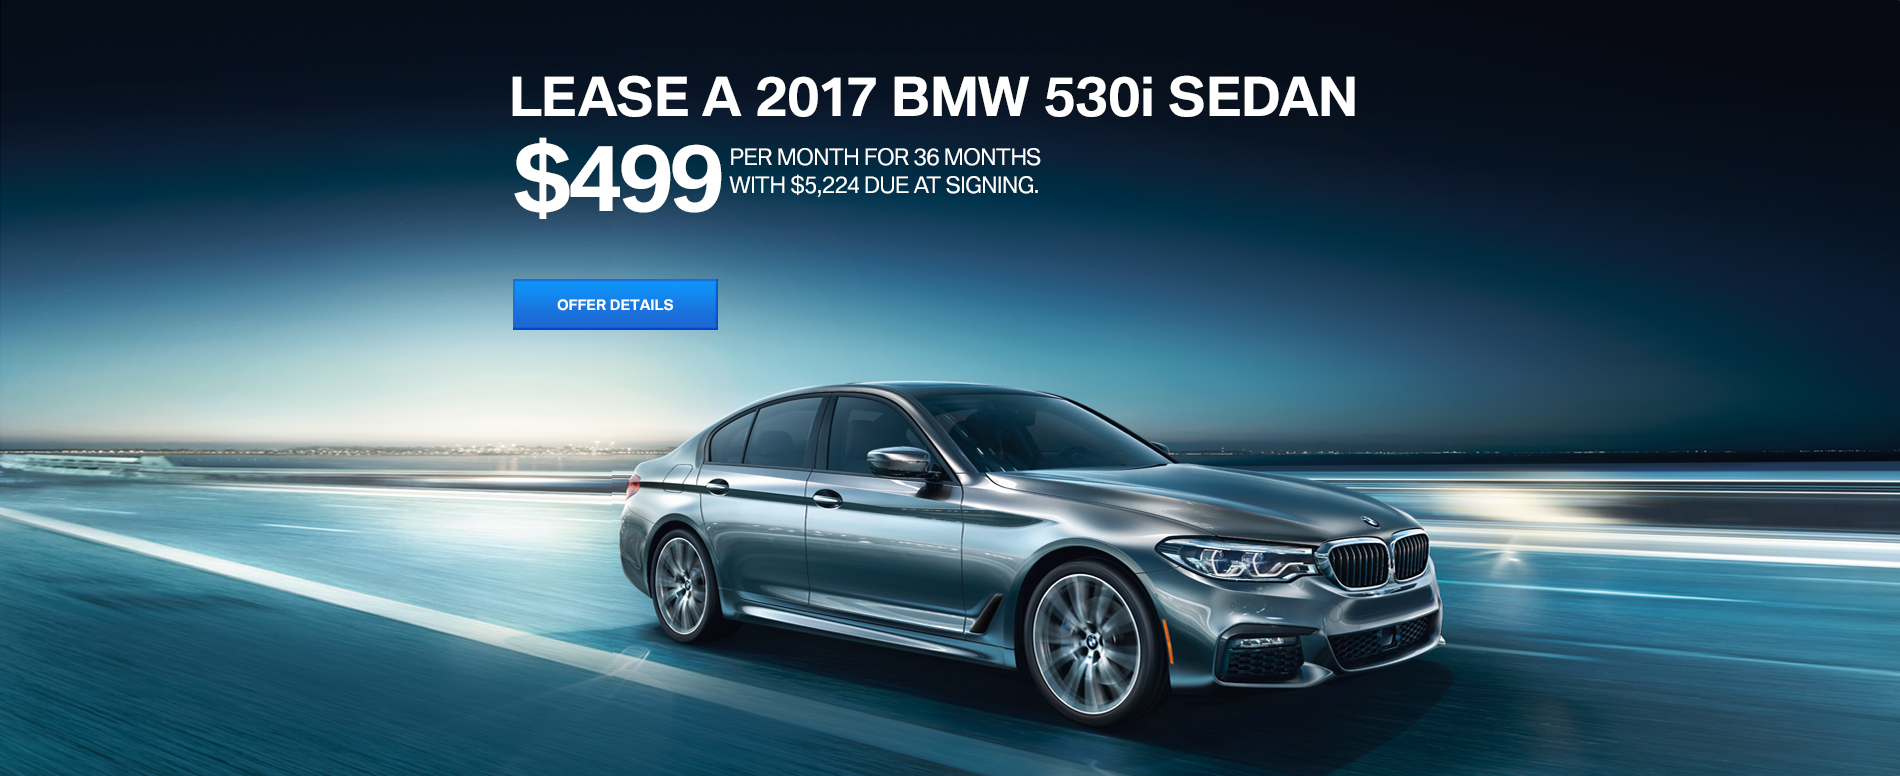 LEASE A 2017 530i SEDAN FOR $499/MO FOR 36 MONTHS, WITH $5,224 D